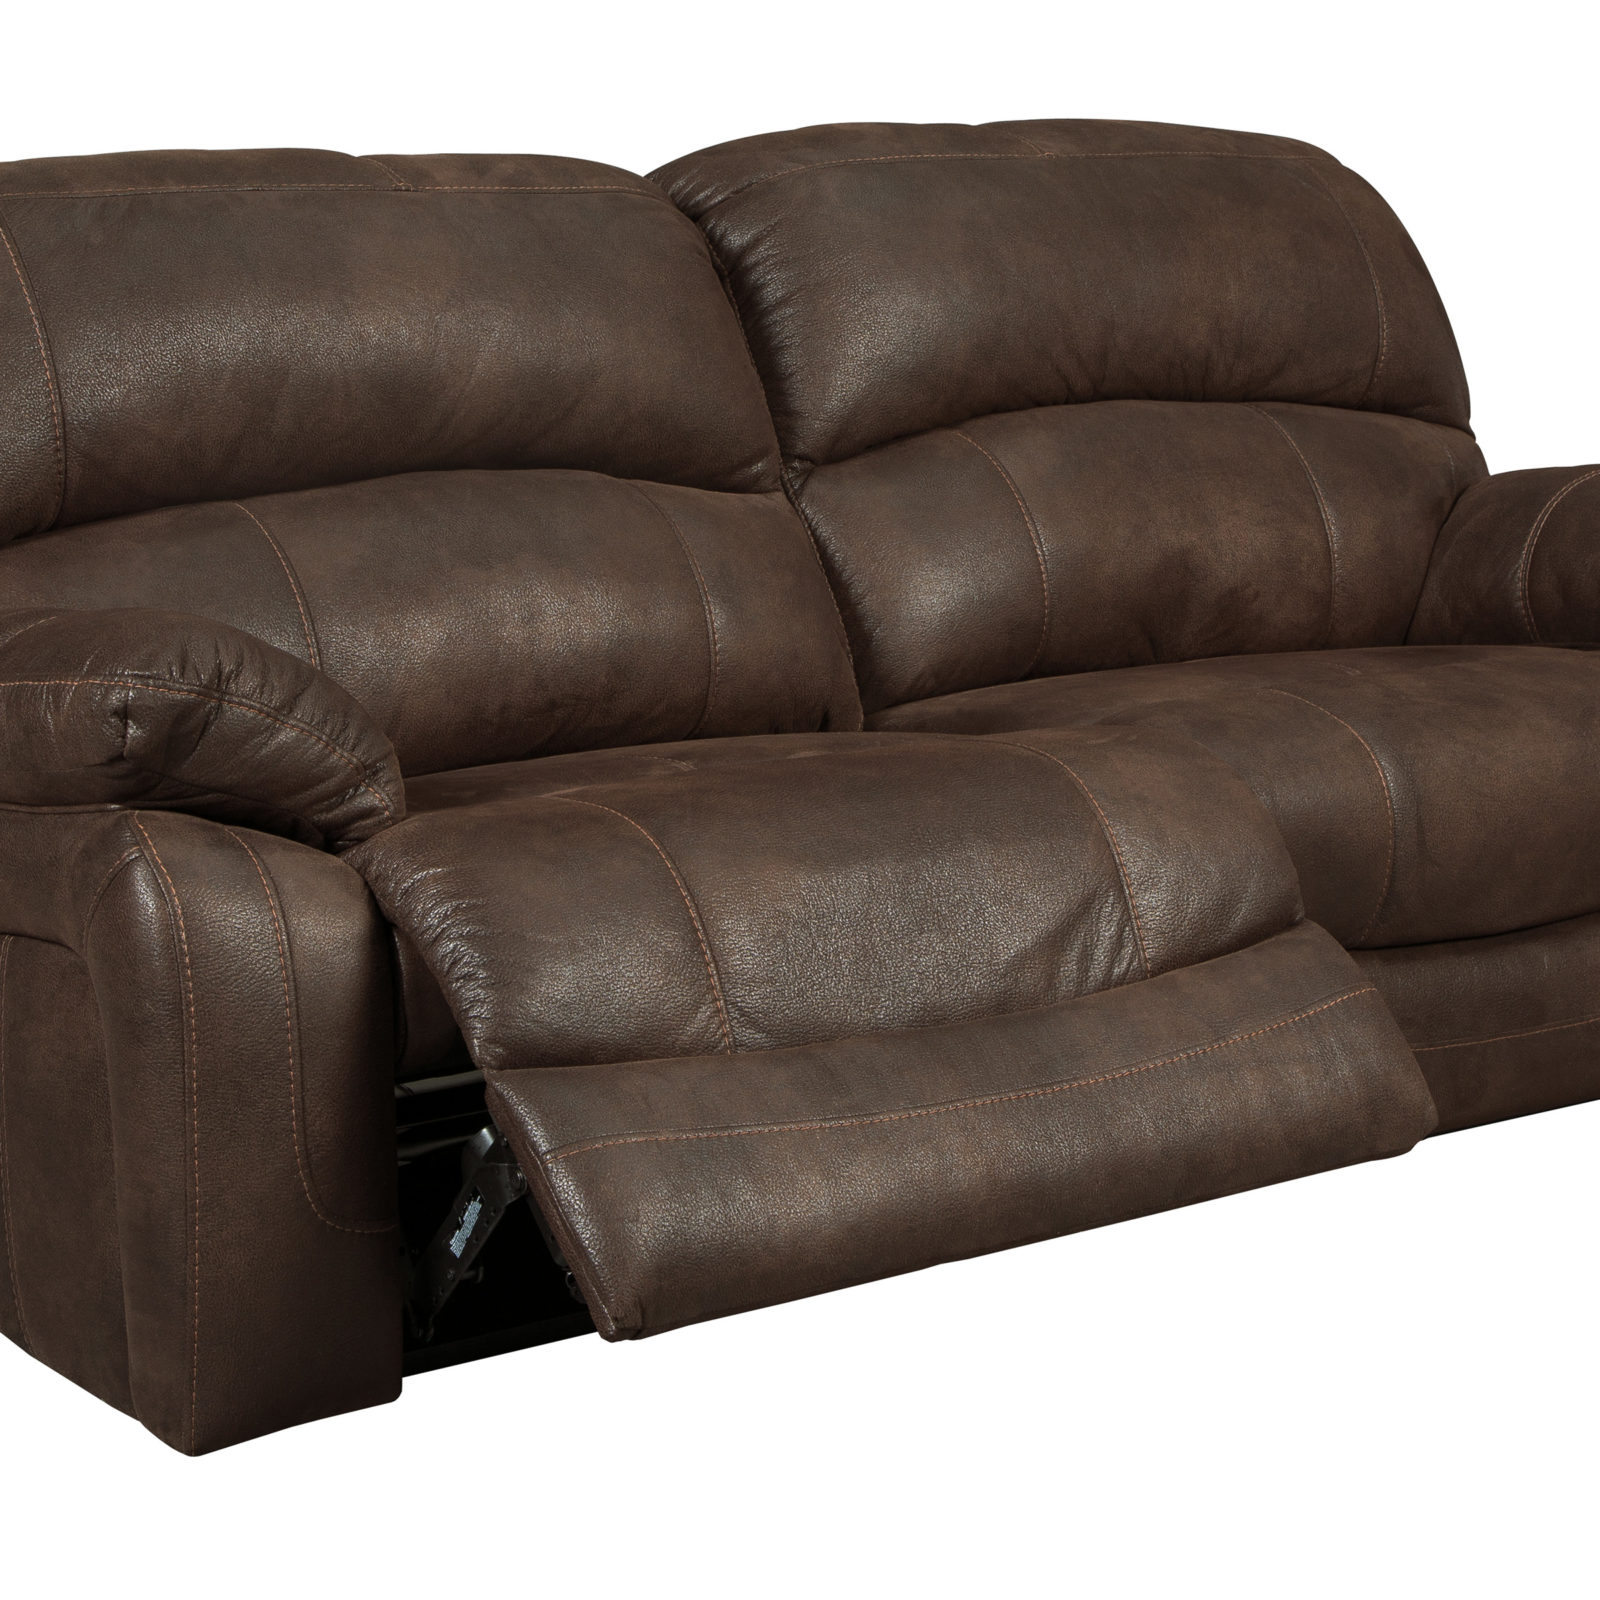 Signature Design Zavier Sofa Harrington Home Furniture